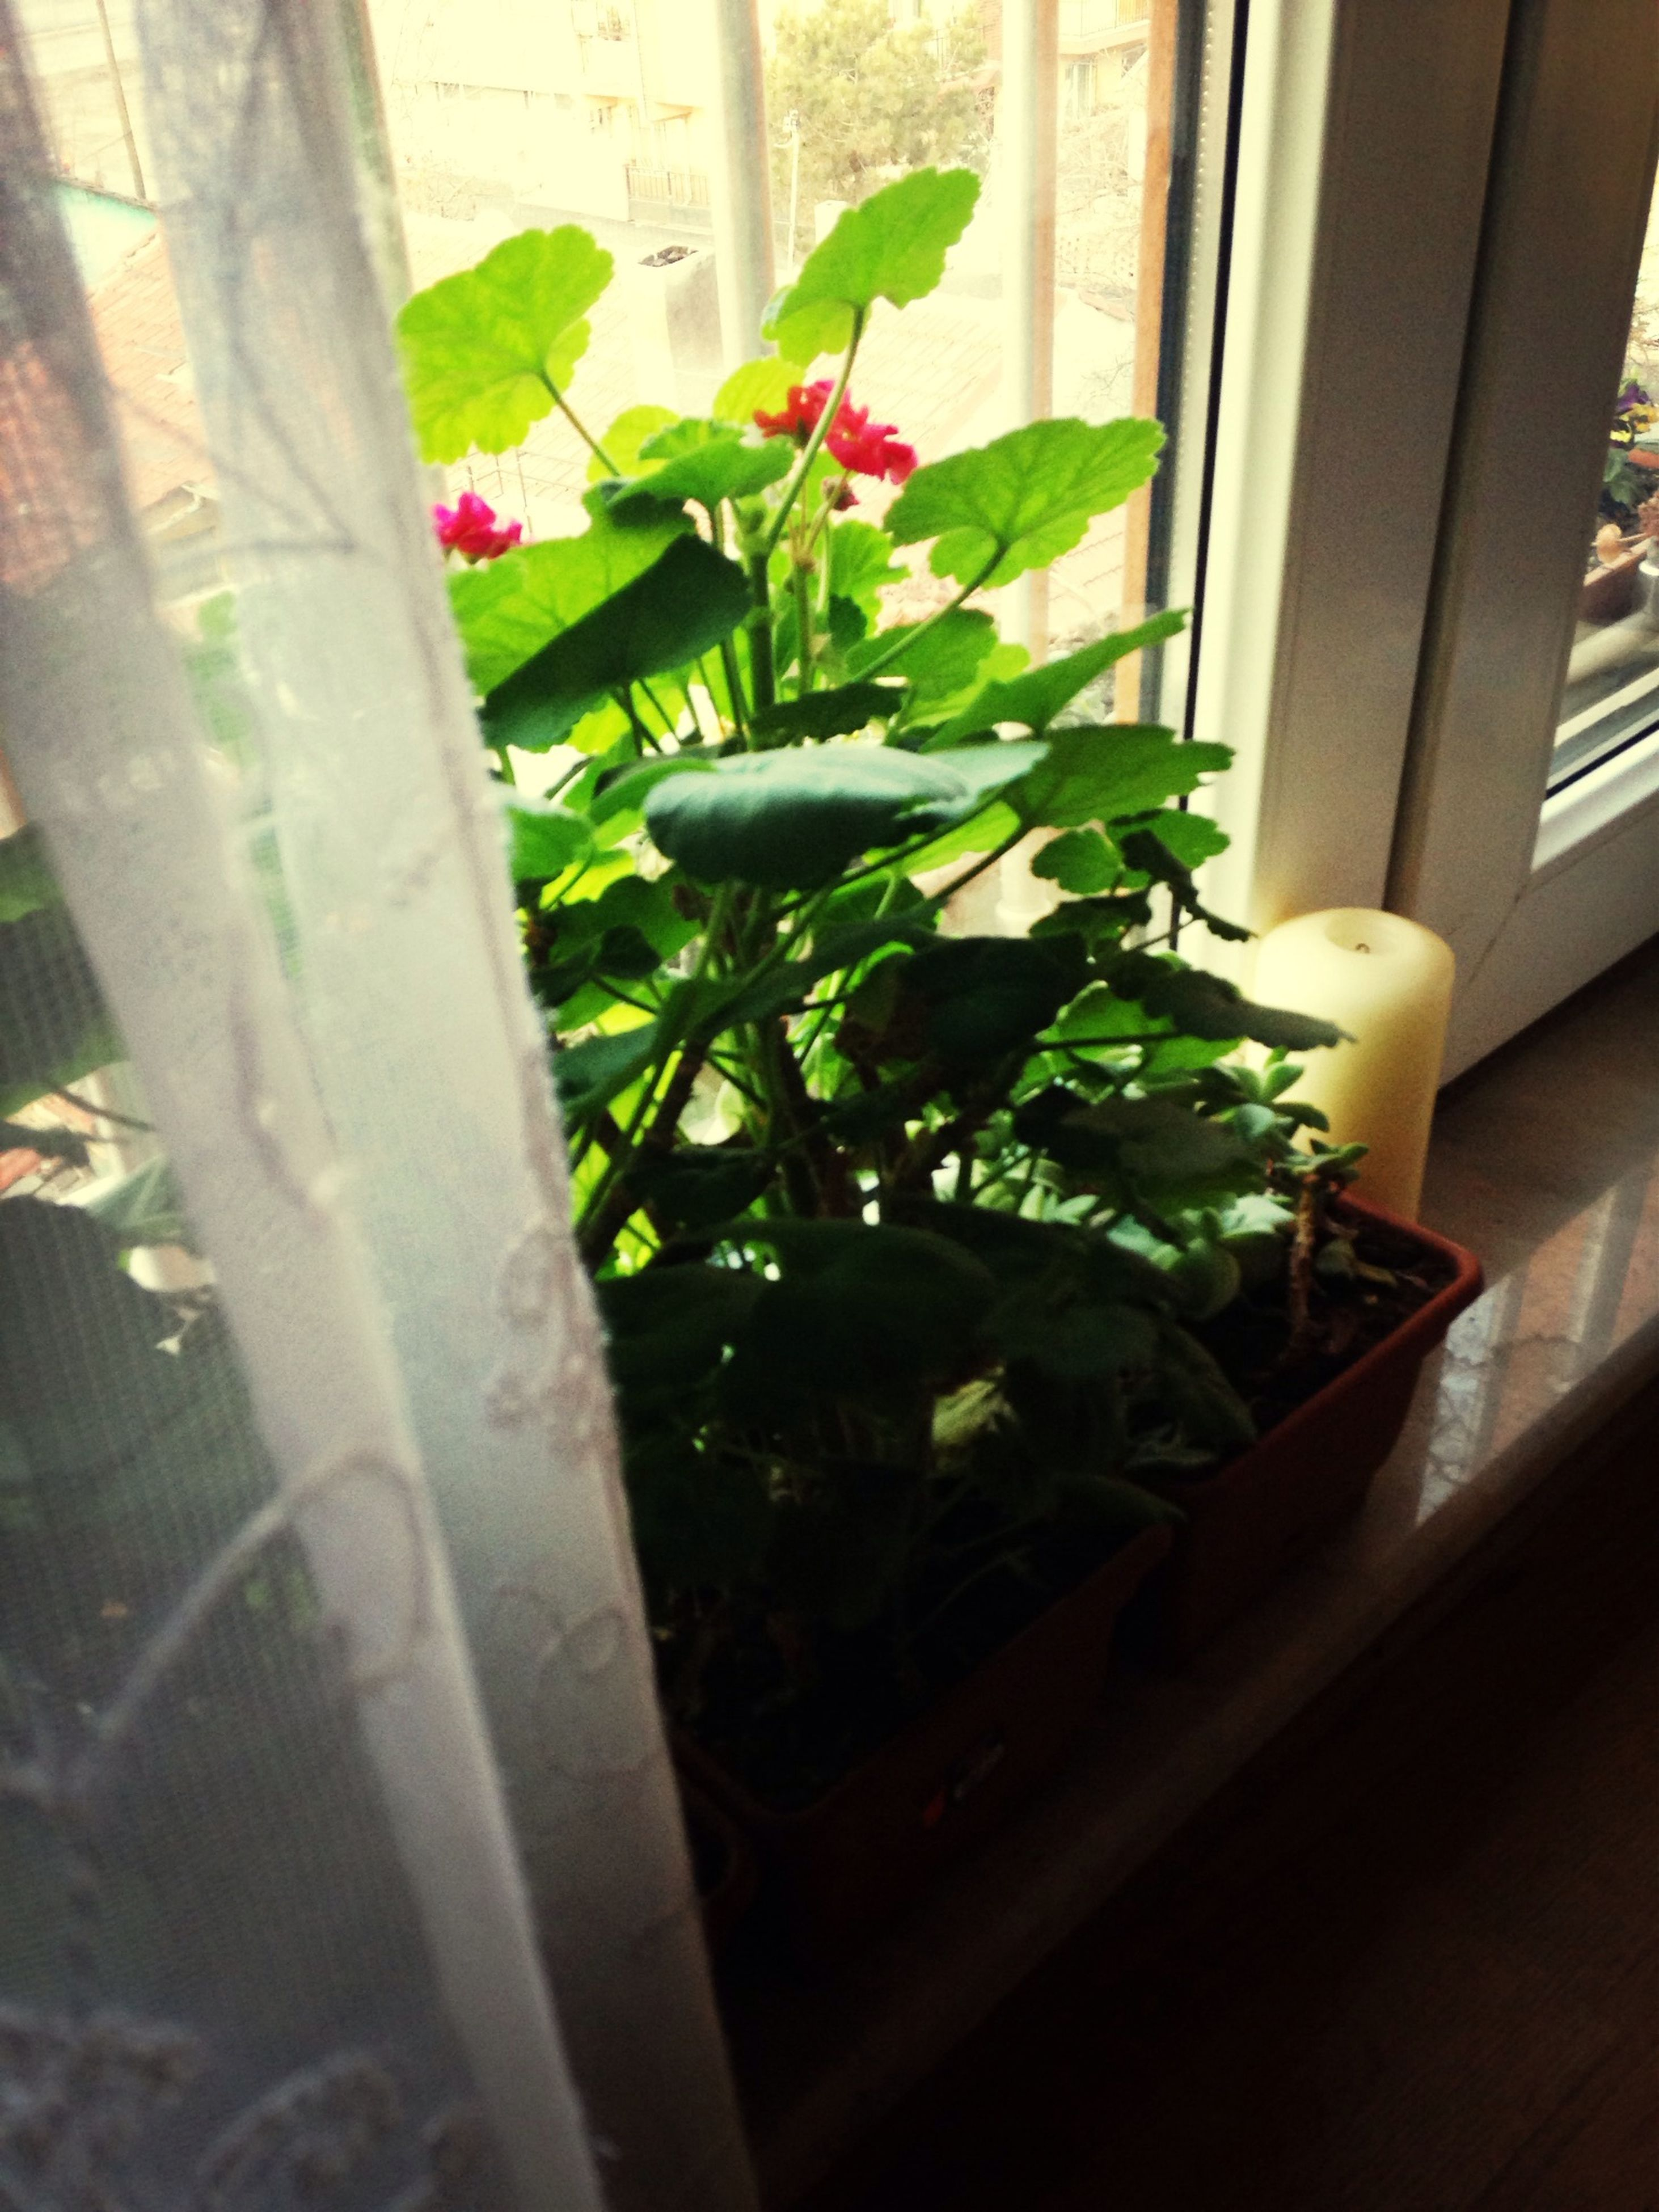 plant, potted plant, growth, indoors, leaf, green color, window, built structure, close-up, no people, nature, day, freshness, front or back yard, wall - building feature, sunlight, architecture, house, home interior, high angle view